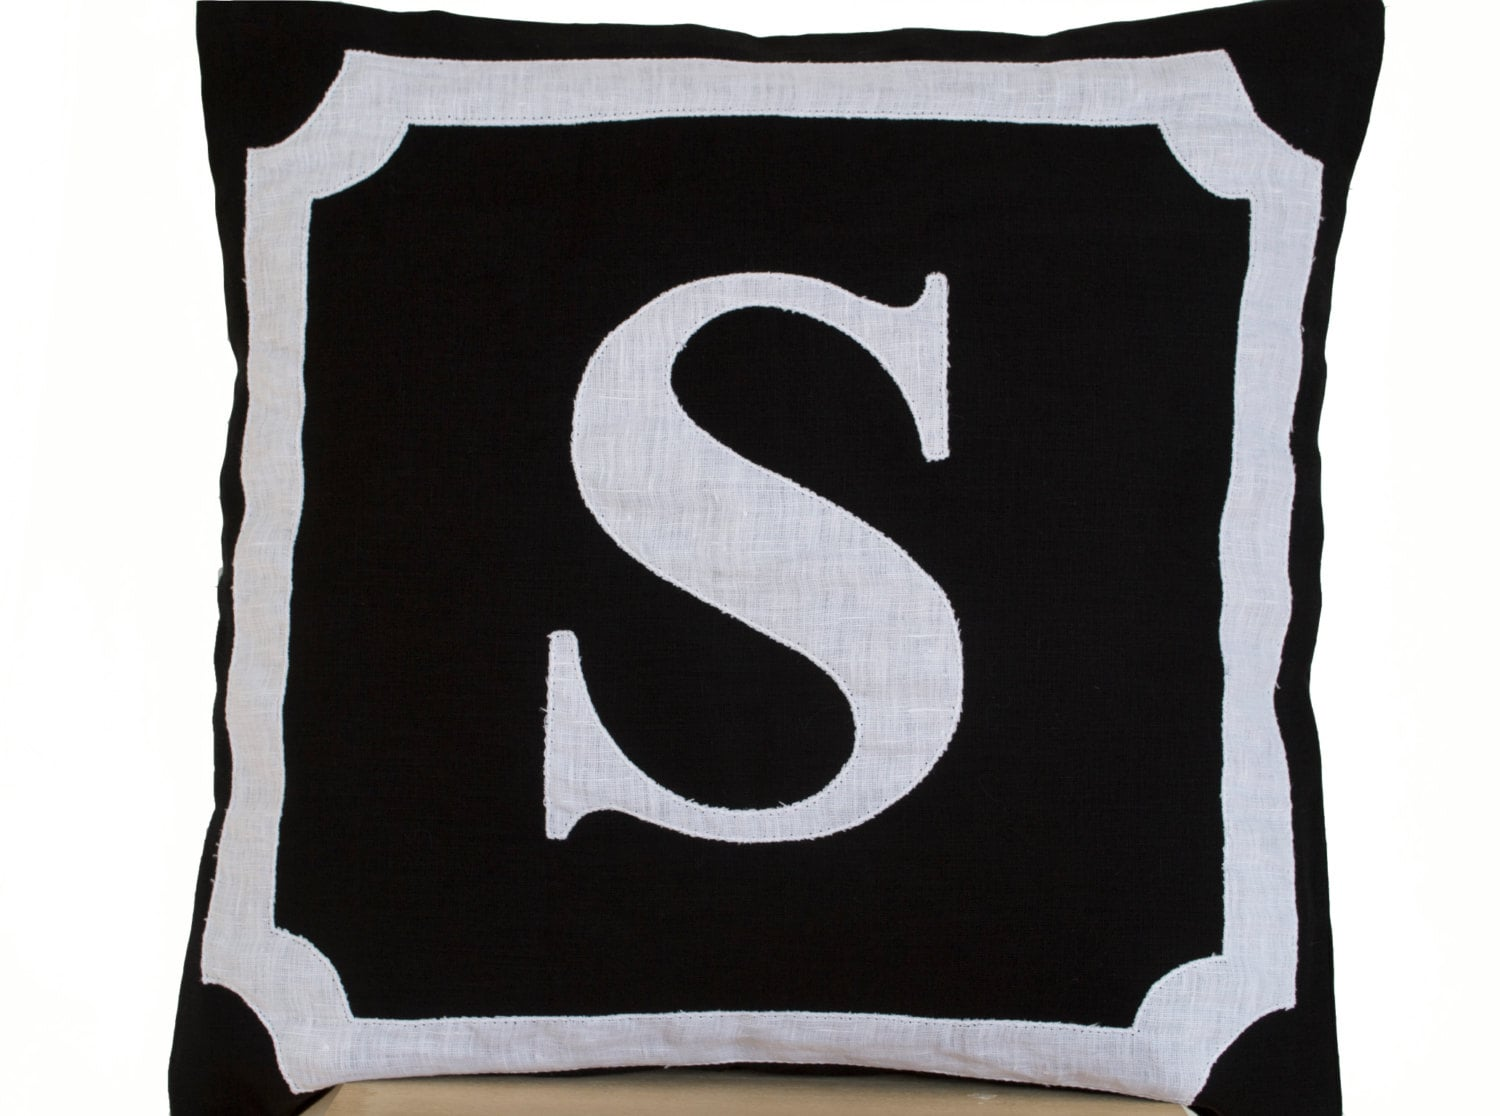 Personalized Monogram Throw Pillow Cotton Pillows Black